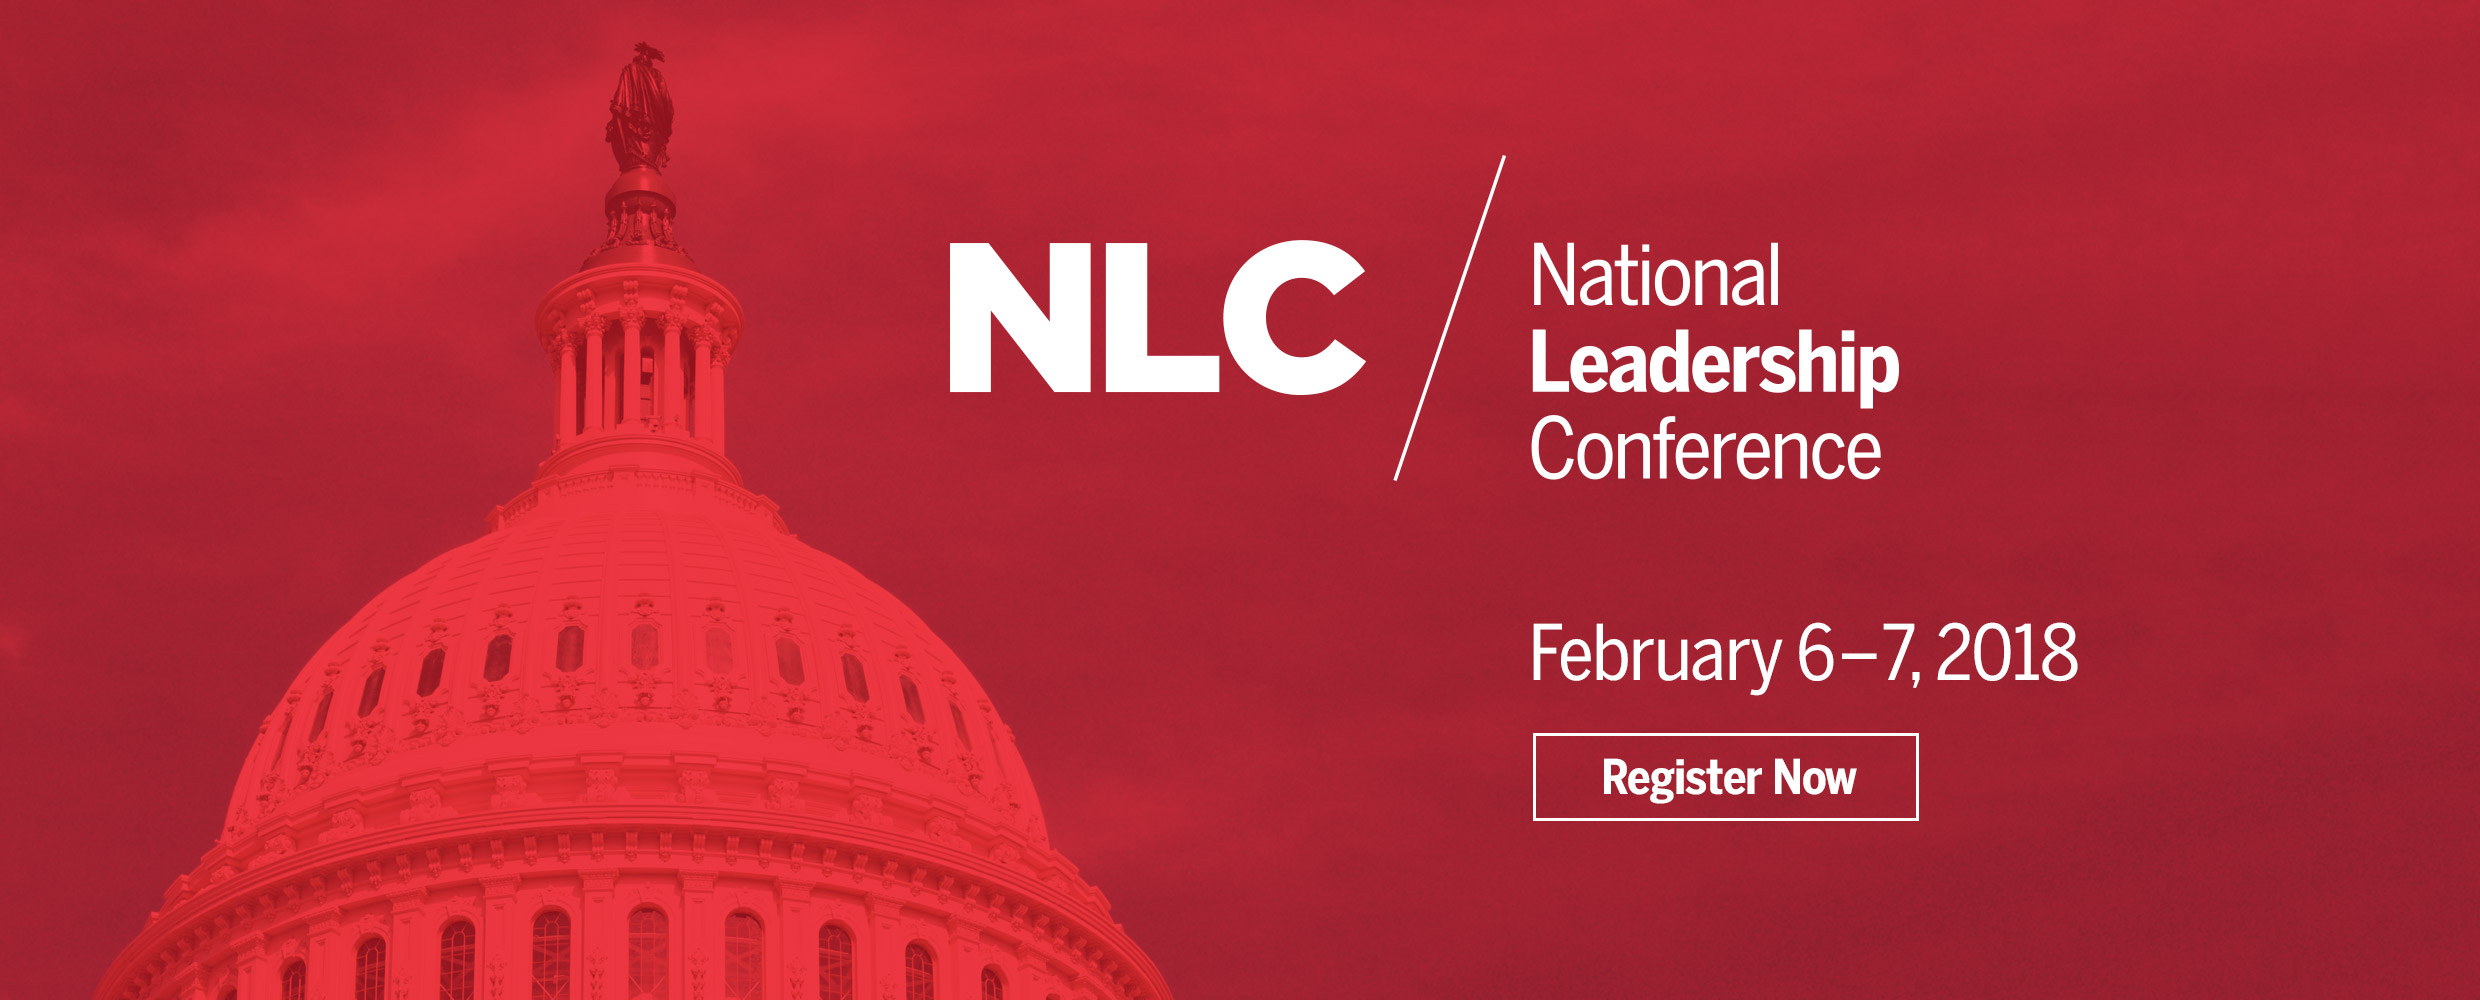 National Leadership Conference Register Now